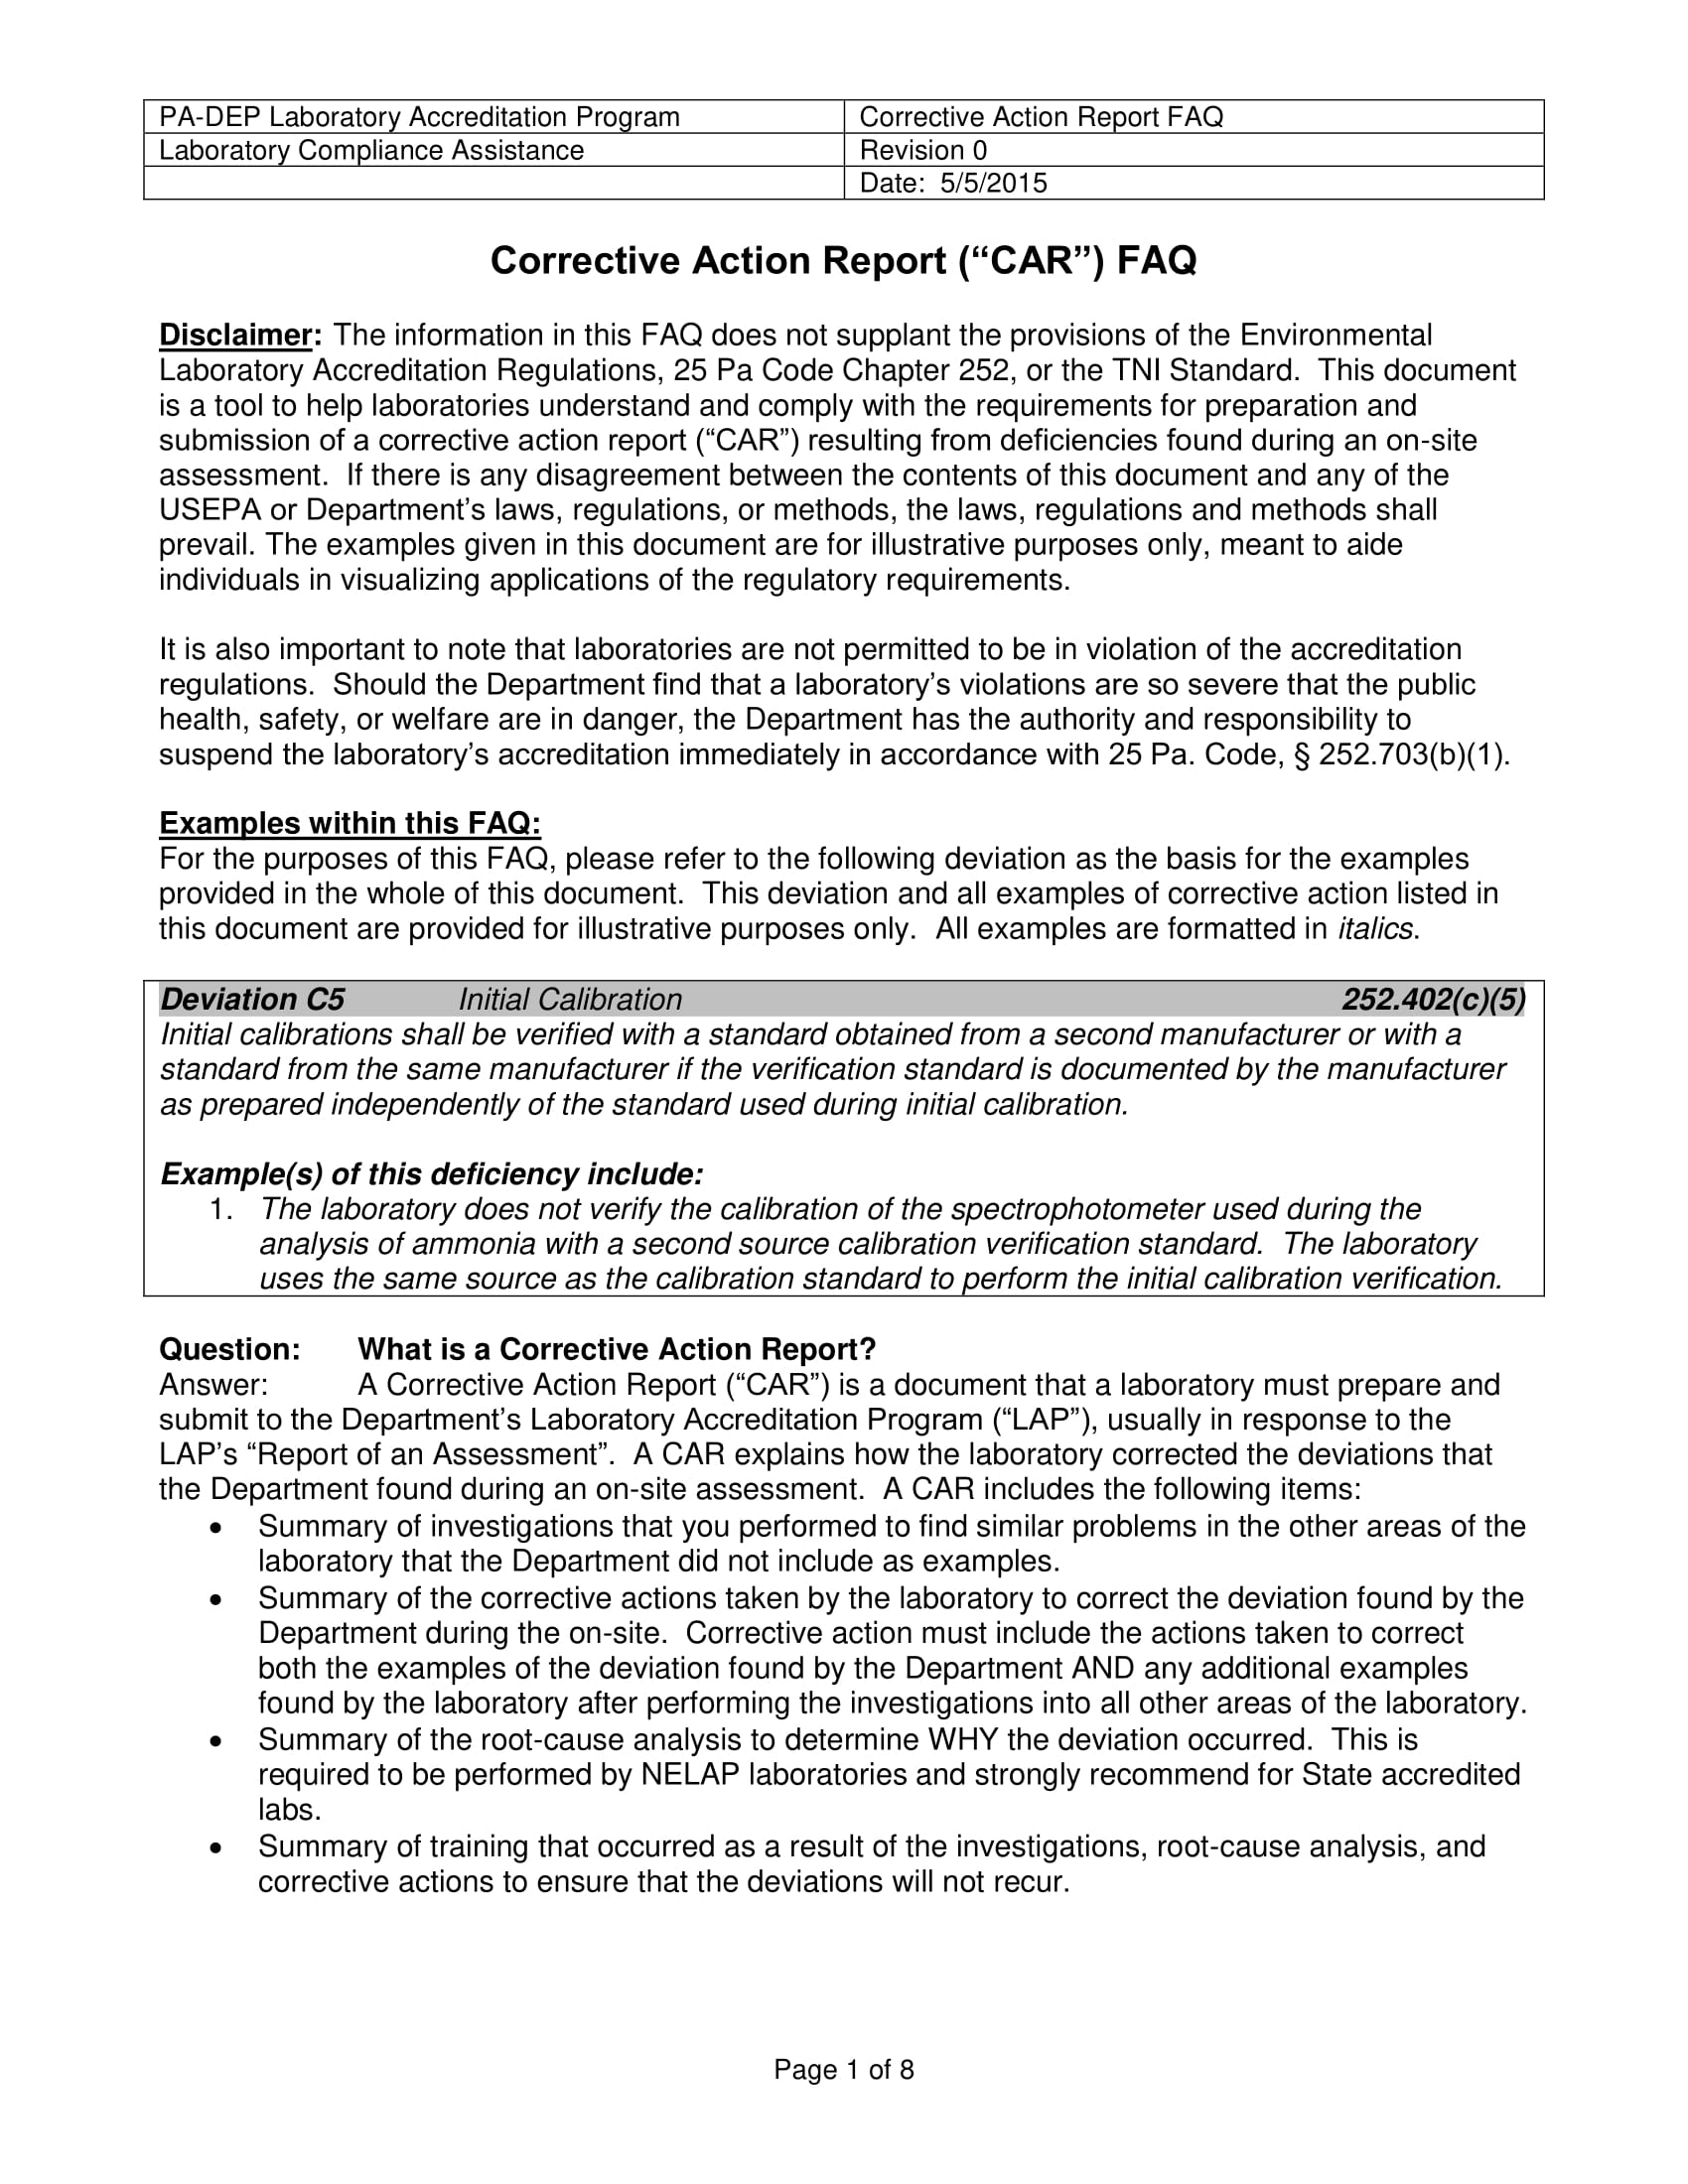 corrective action report guidelines example 1